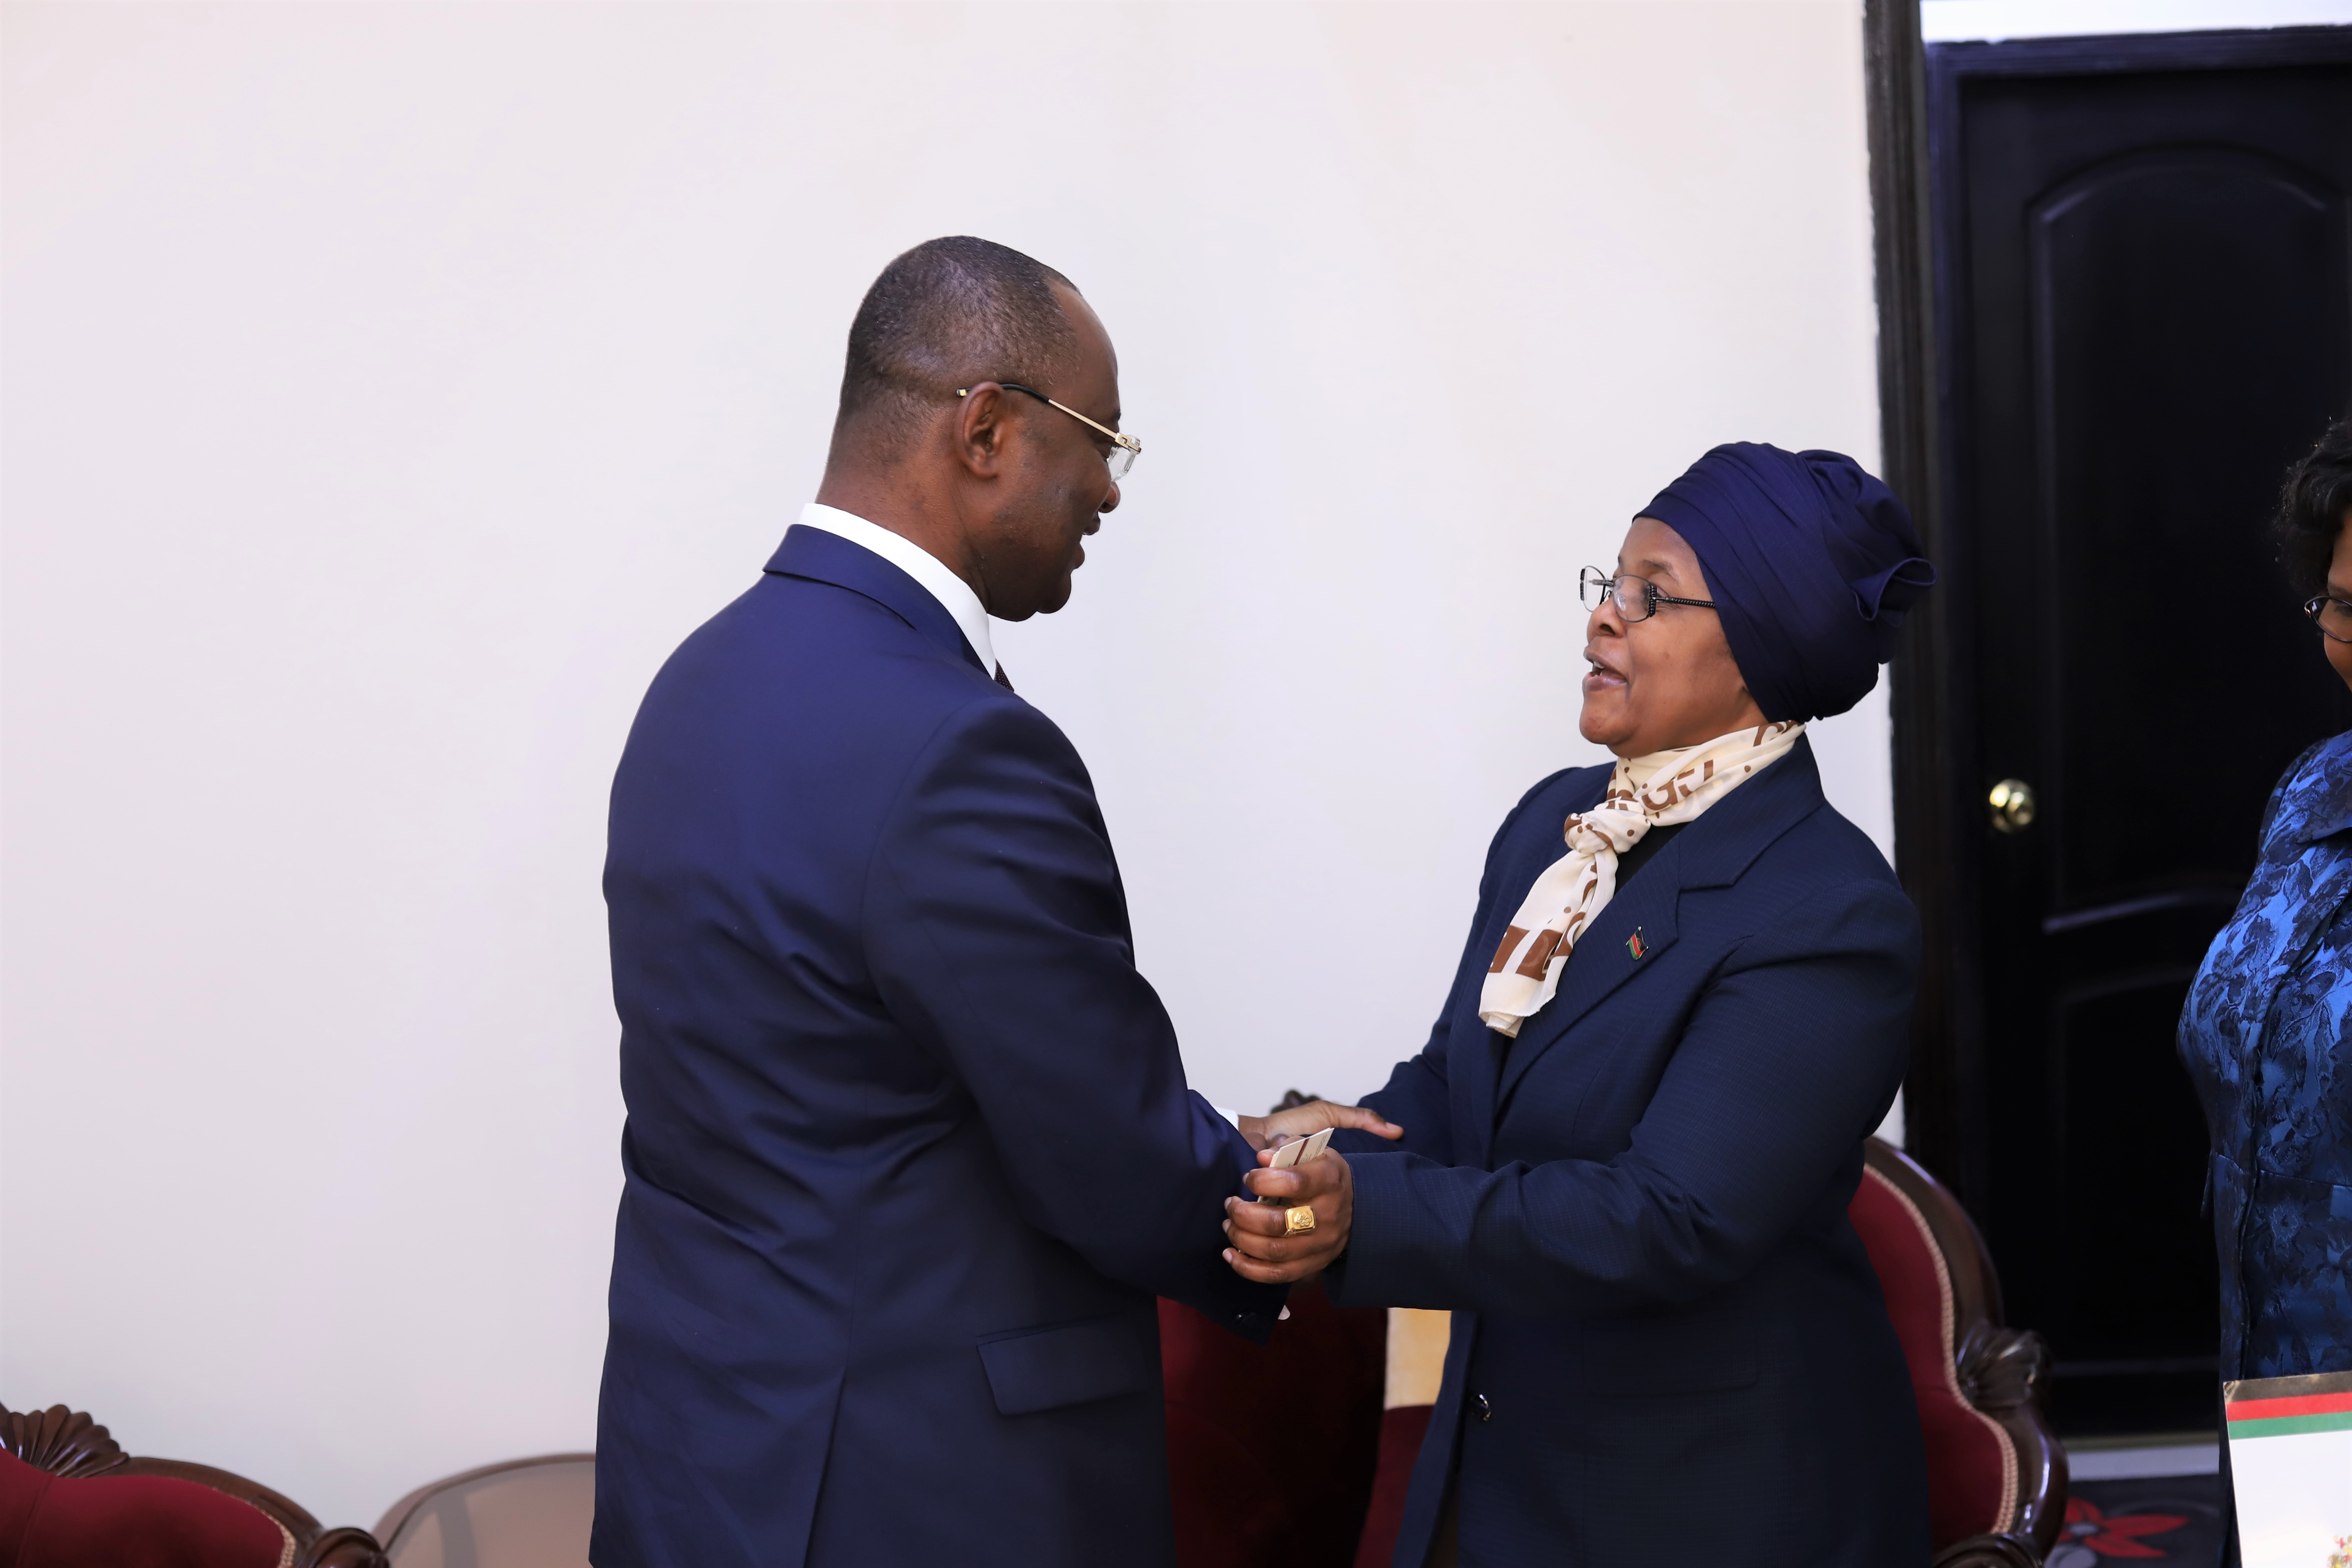 Afreximbank Executive Vice President Dr George Elombi (left) being welcomed by Caroline Bwanali-Mussa, Ambassador of Malawi to Egypt.